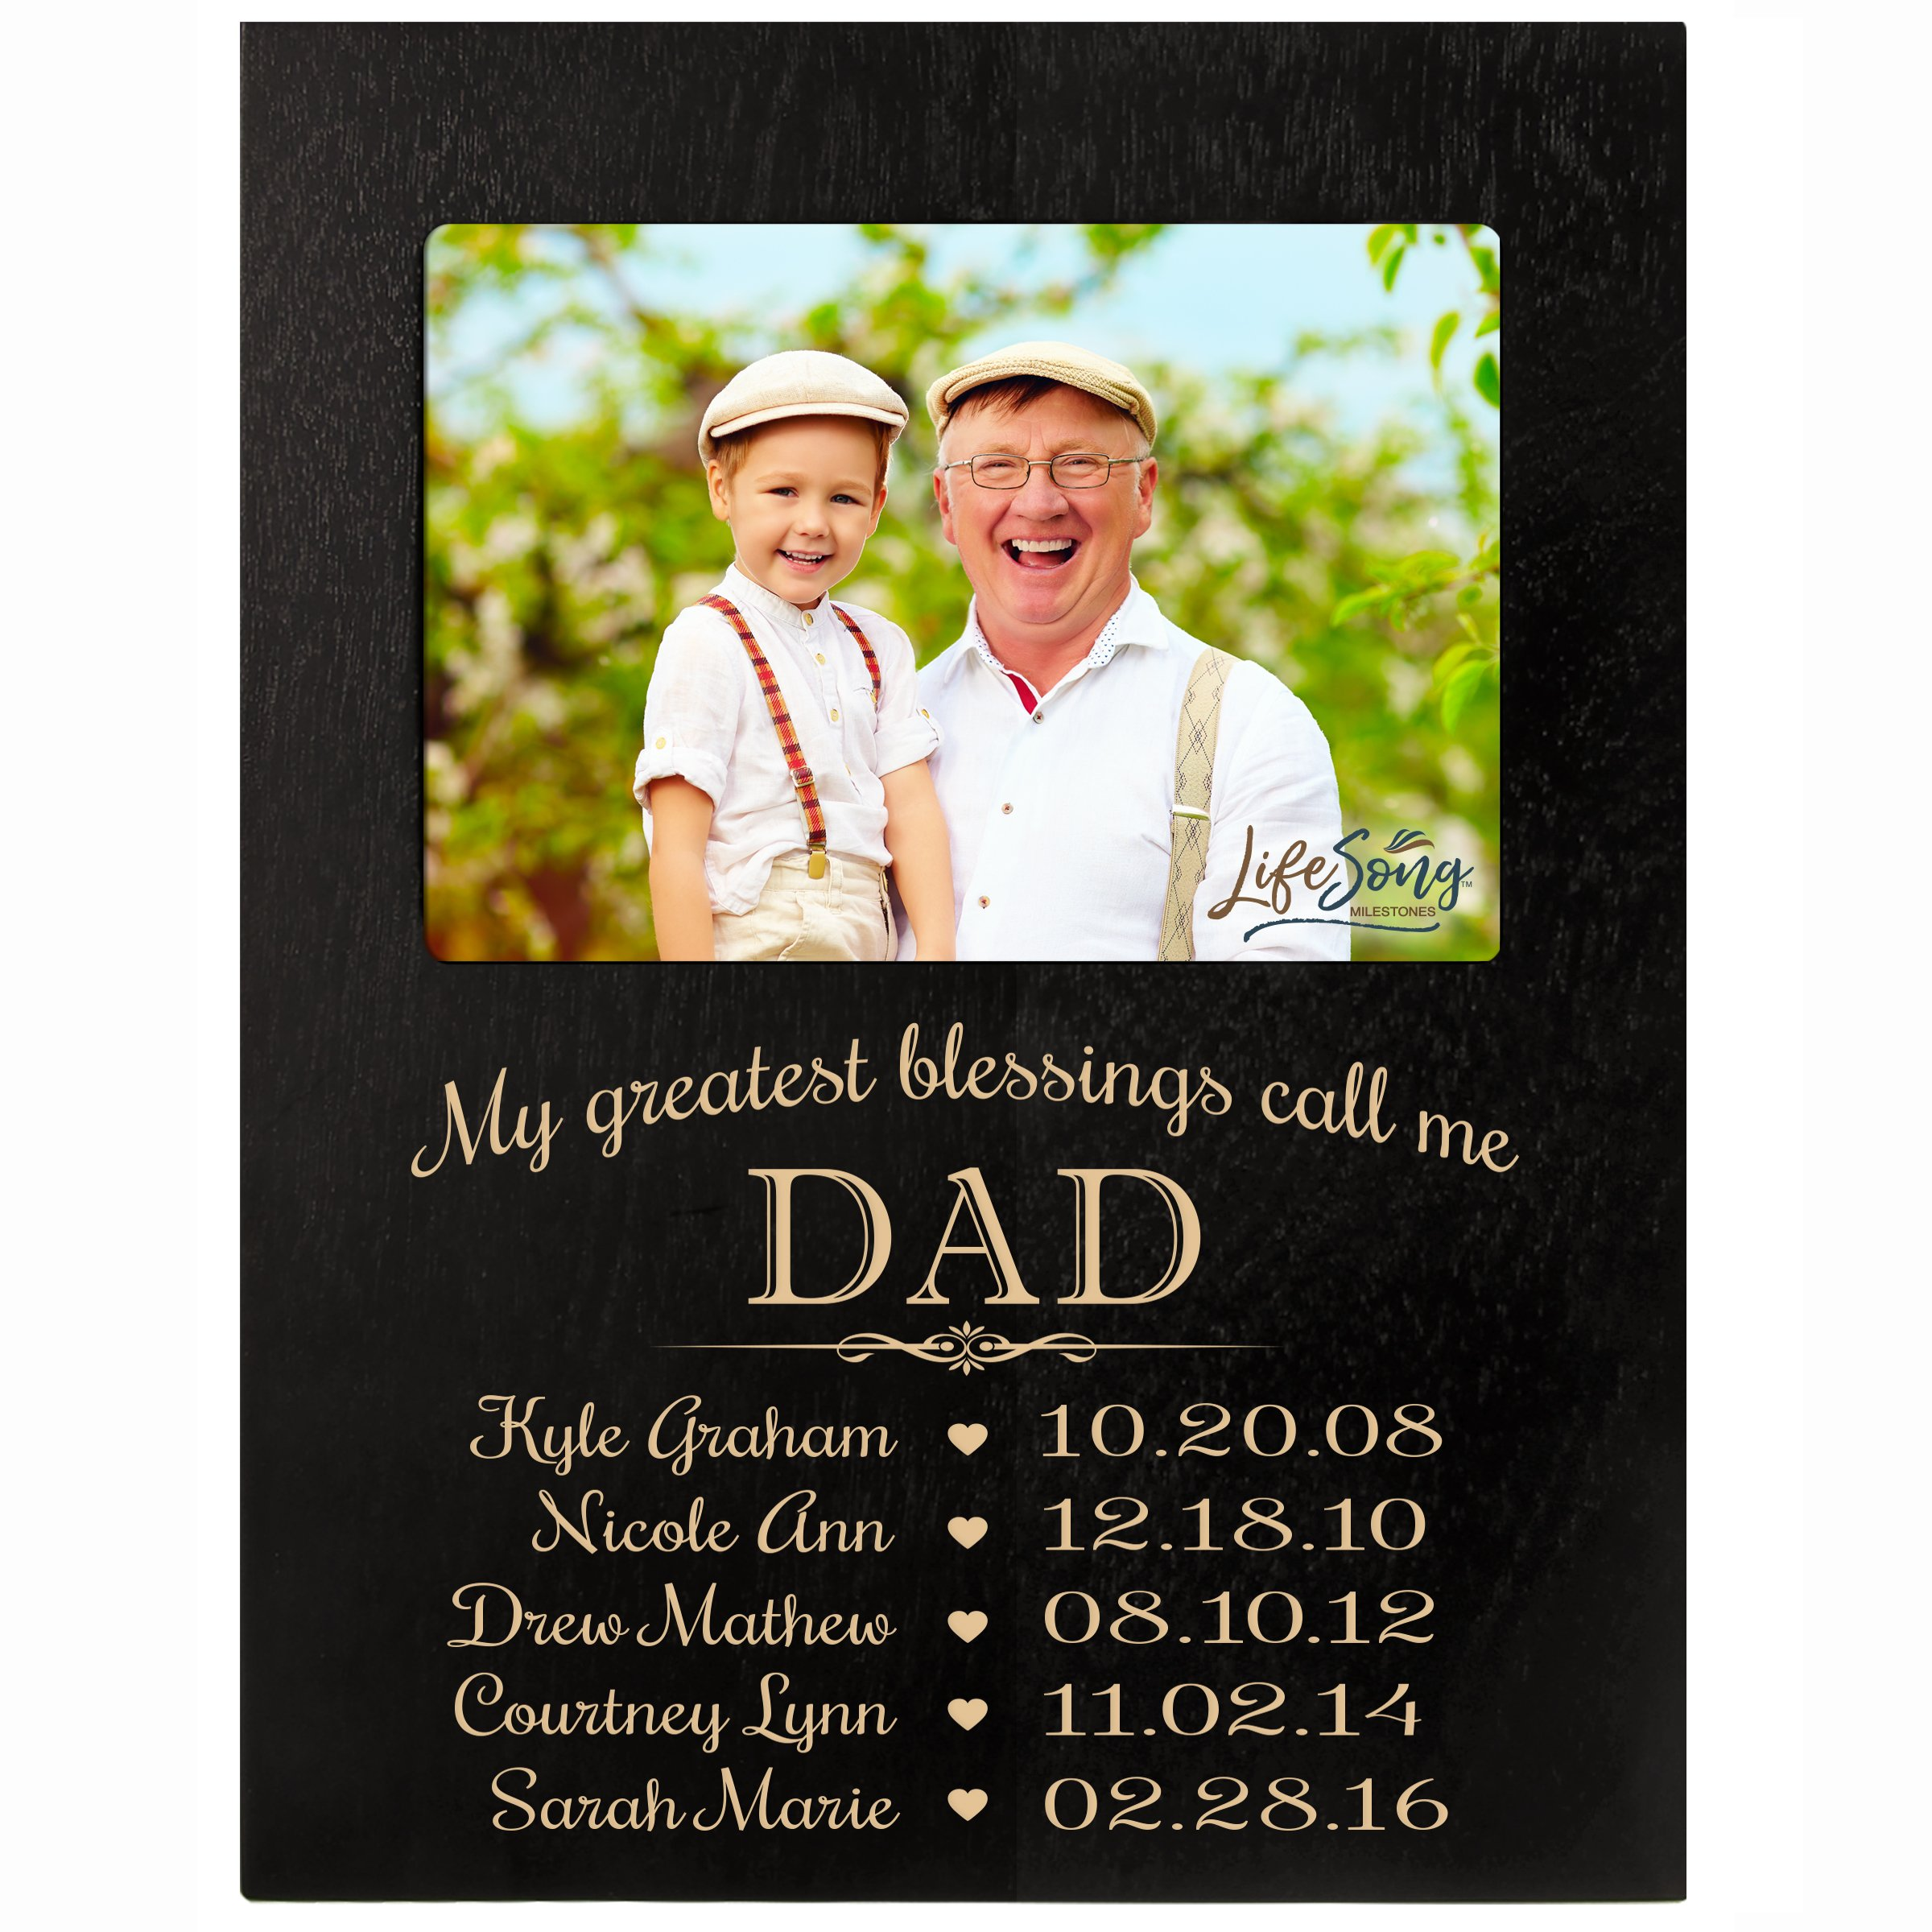 LifeSong Milestones Personalized Gift for Dad Picture Frame with Children's Names and Kid's Birth Date Special Dates My Greatest Blessings Call me Dad Holds 4x6 Photo (Black)